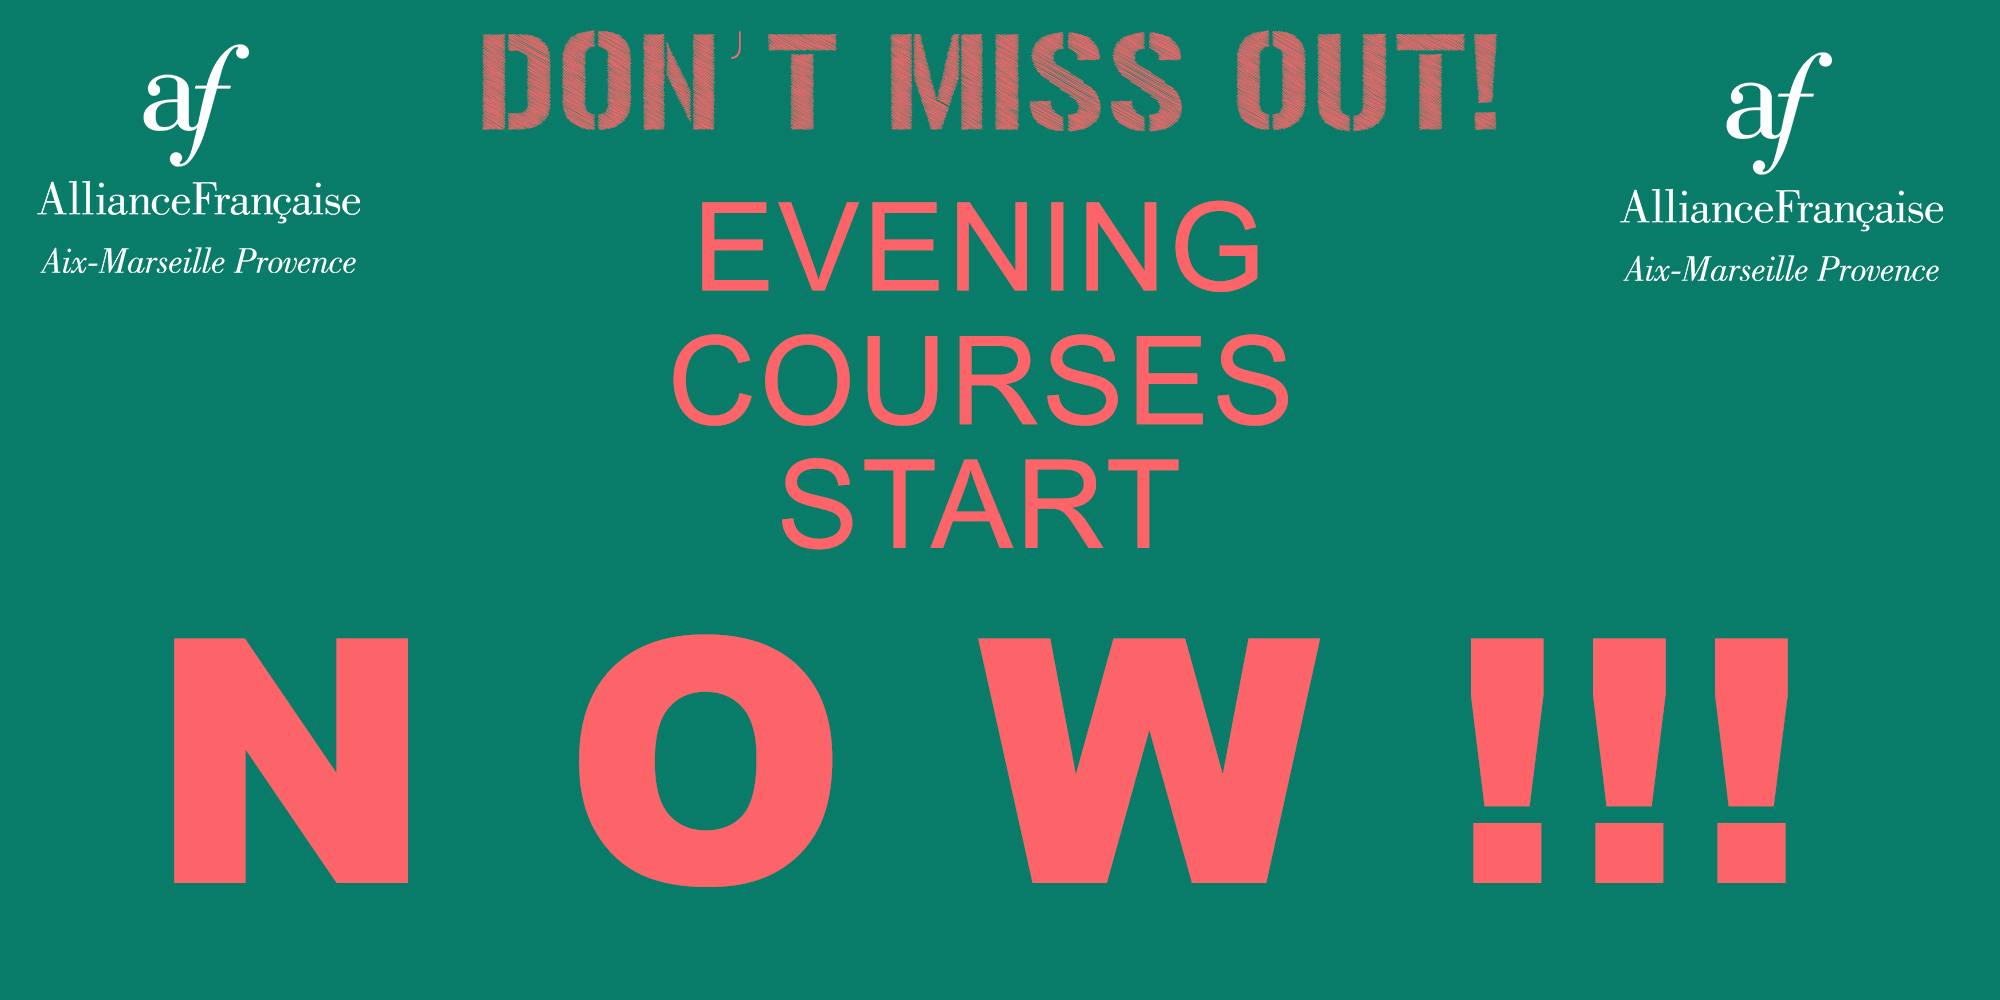 Evening courses started from Tuesday September 18th !